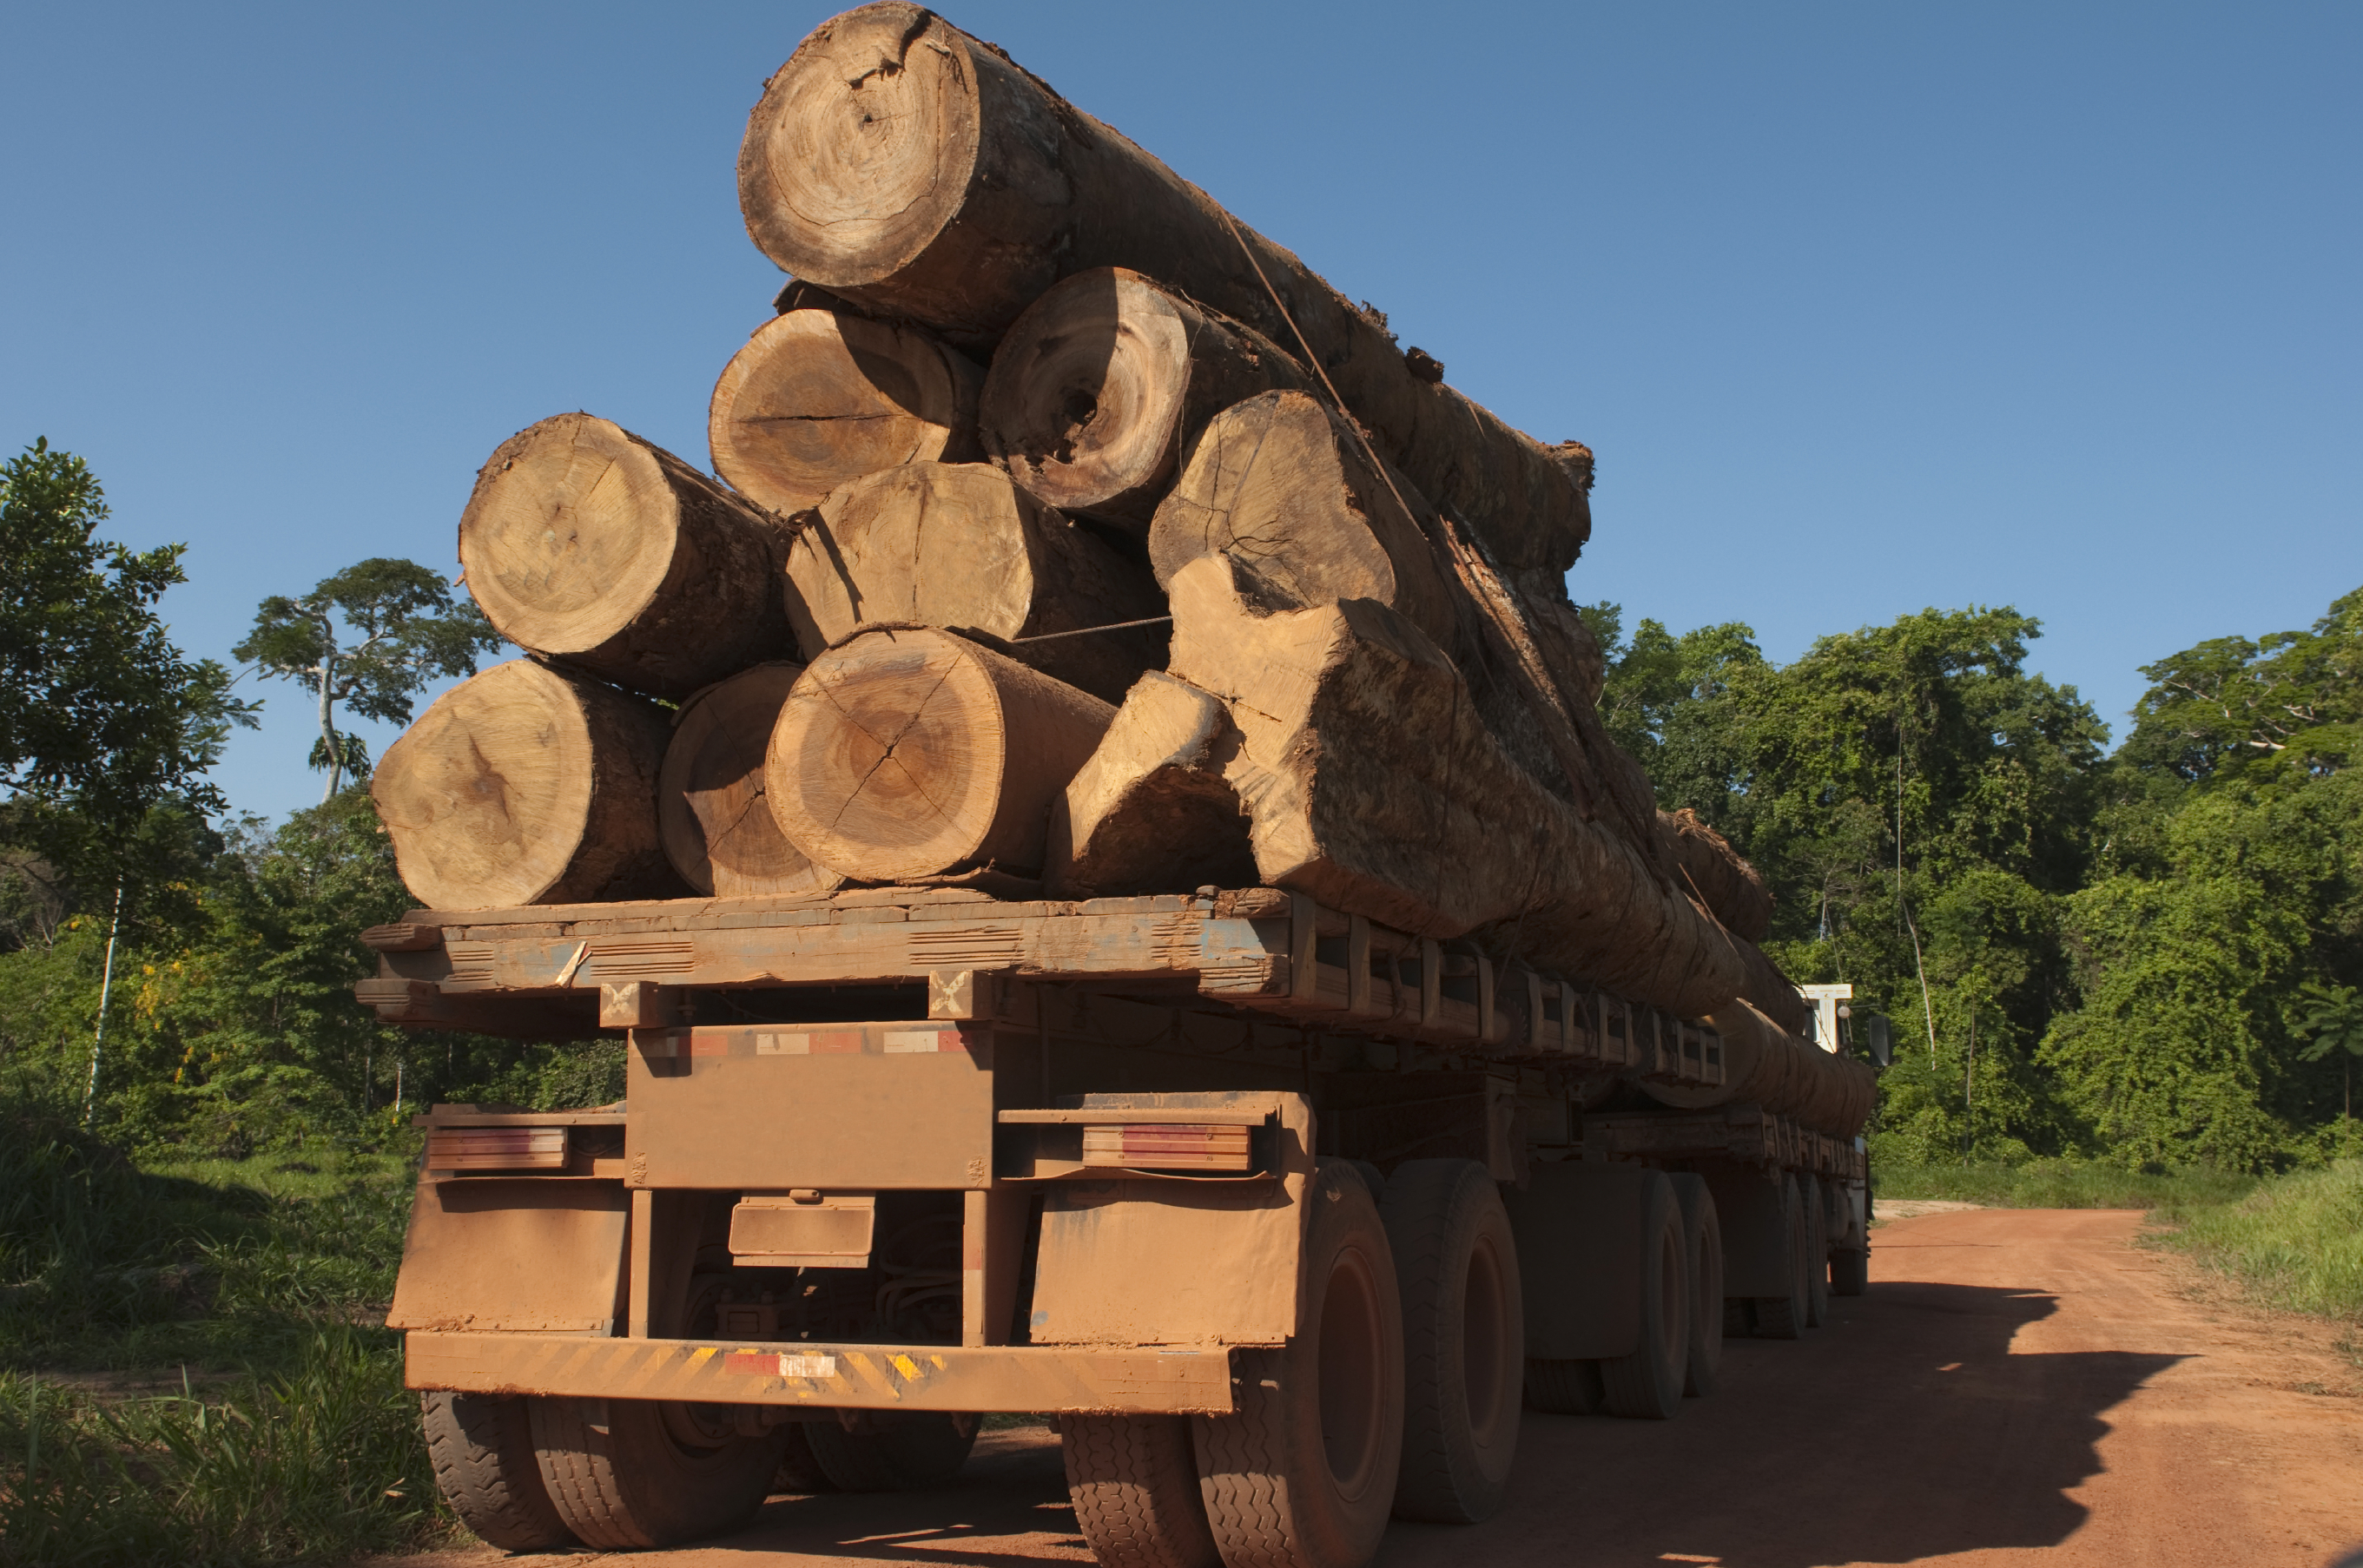 Billions of Dollars Lost Each Year to Illegal Logging ...